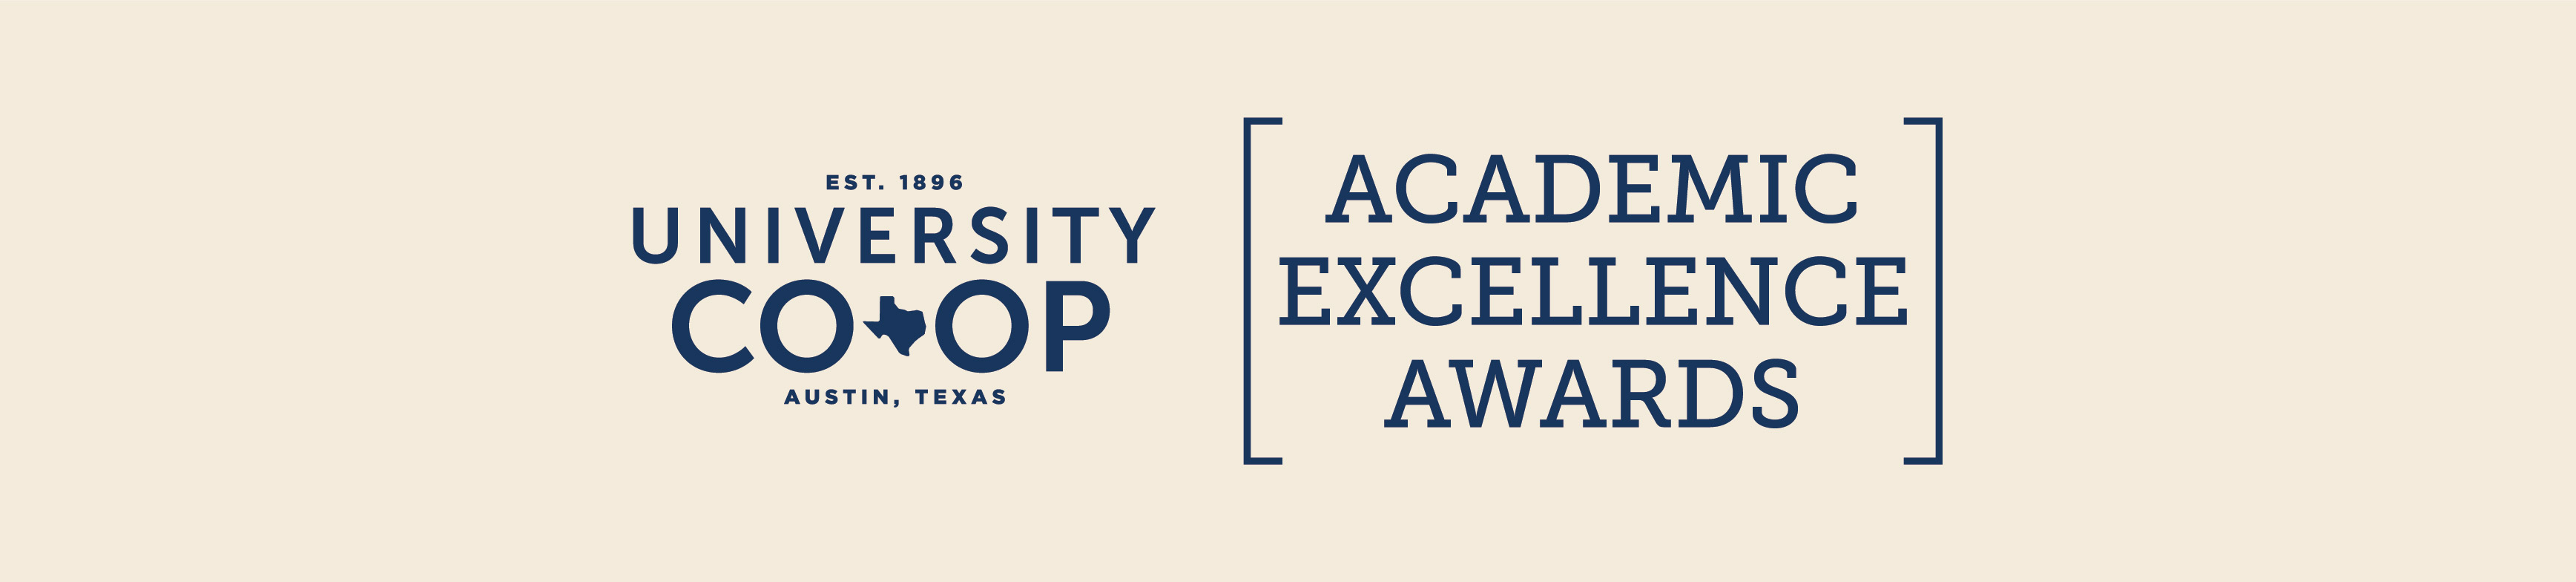 The University Co-op Academic Excellence Awards